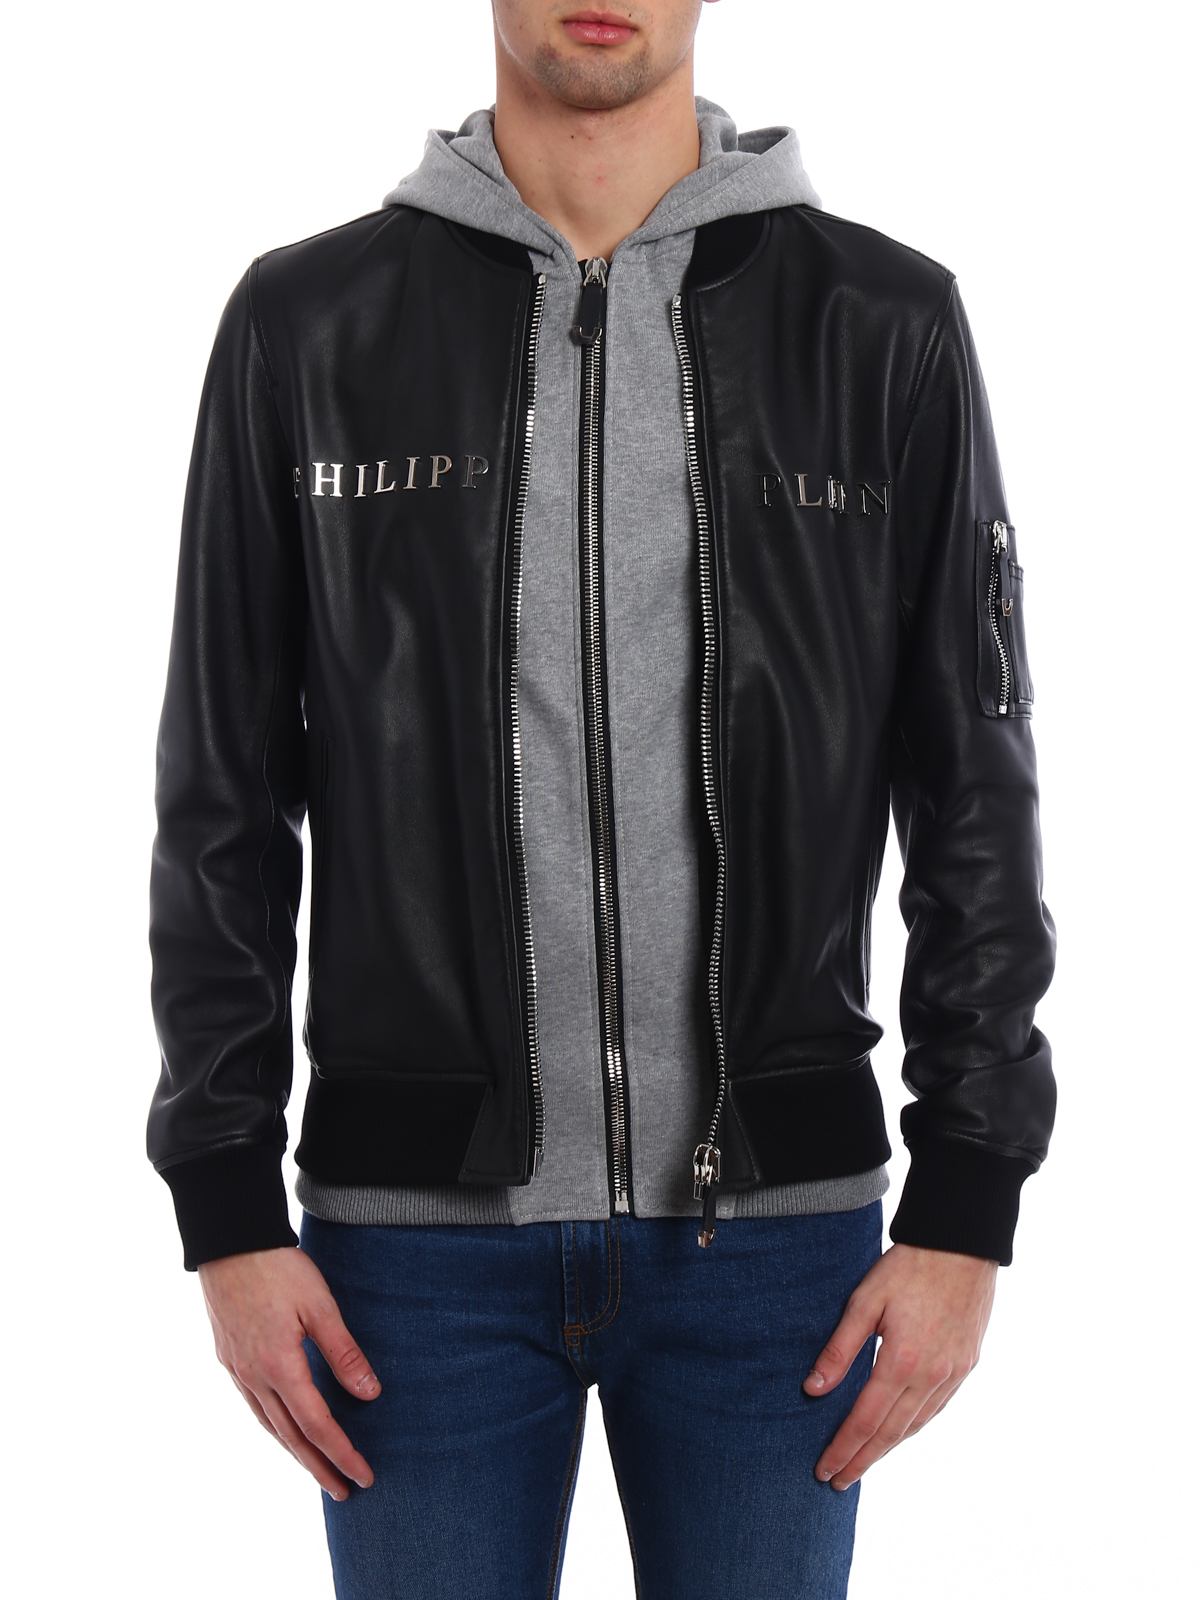 8be6f568d1 iKRIX PHILIPP PLEIN: leather jacket - Urban double front leather jacket